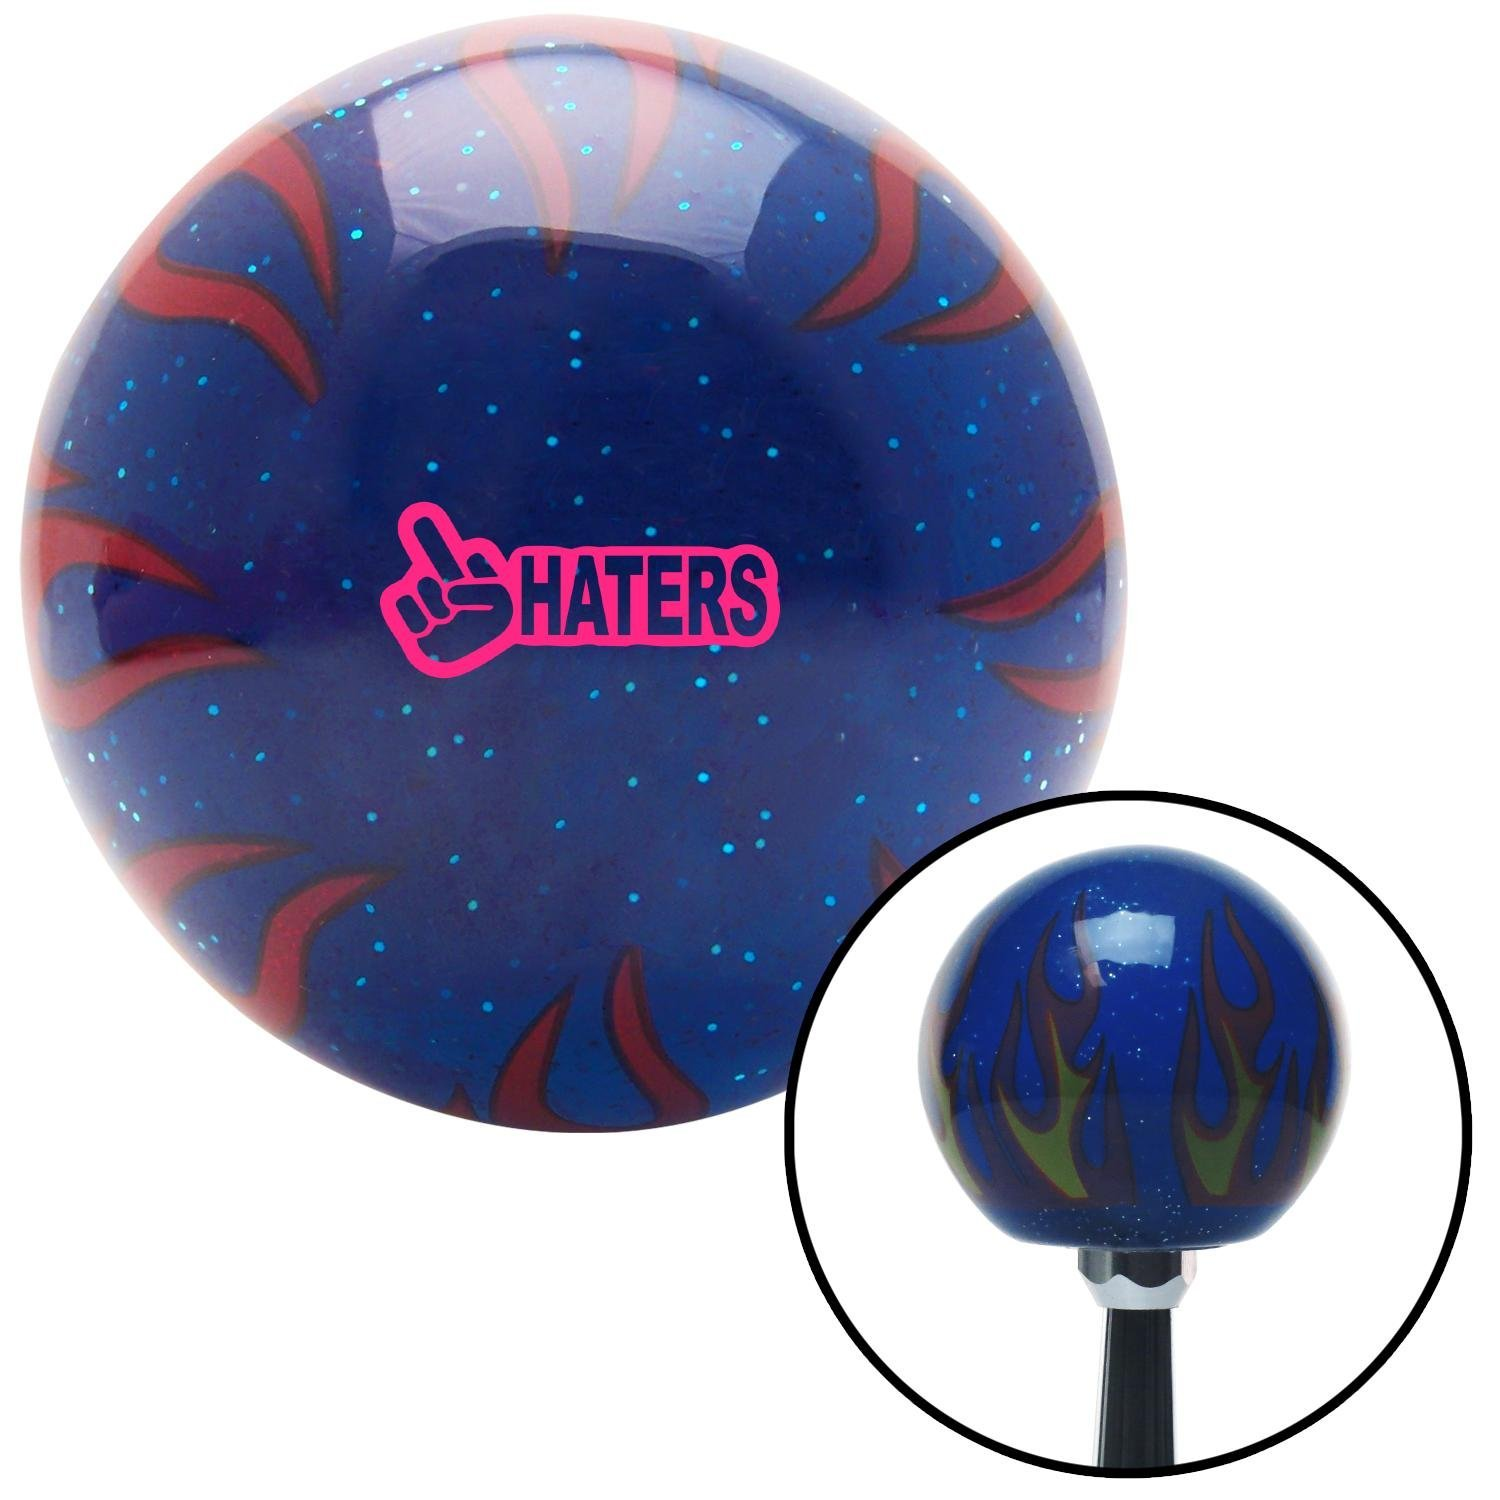 American Shifter 298552 Shift Knob Pink Haters Blue Flame Metal Flake with M16 x 1.5 Insert